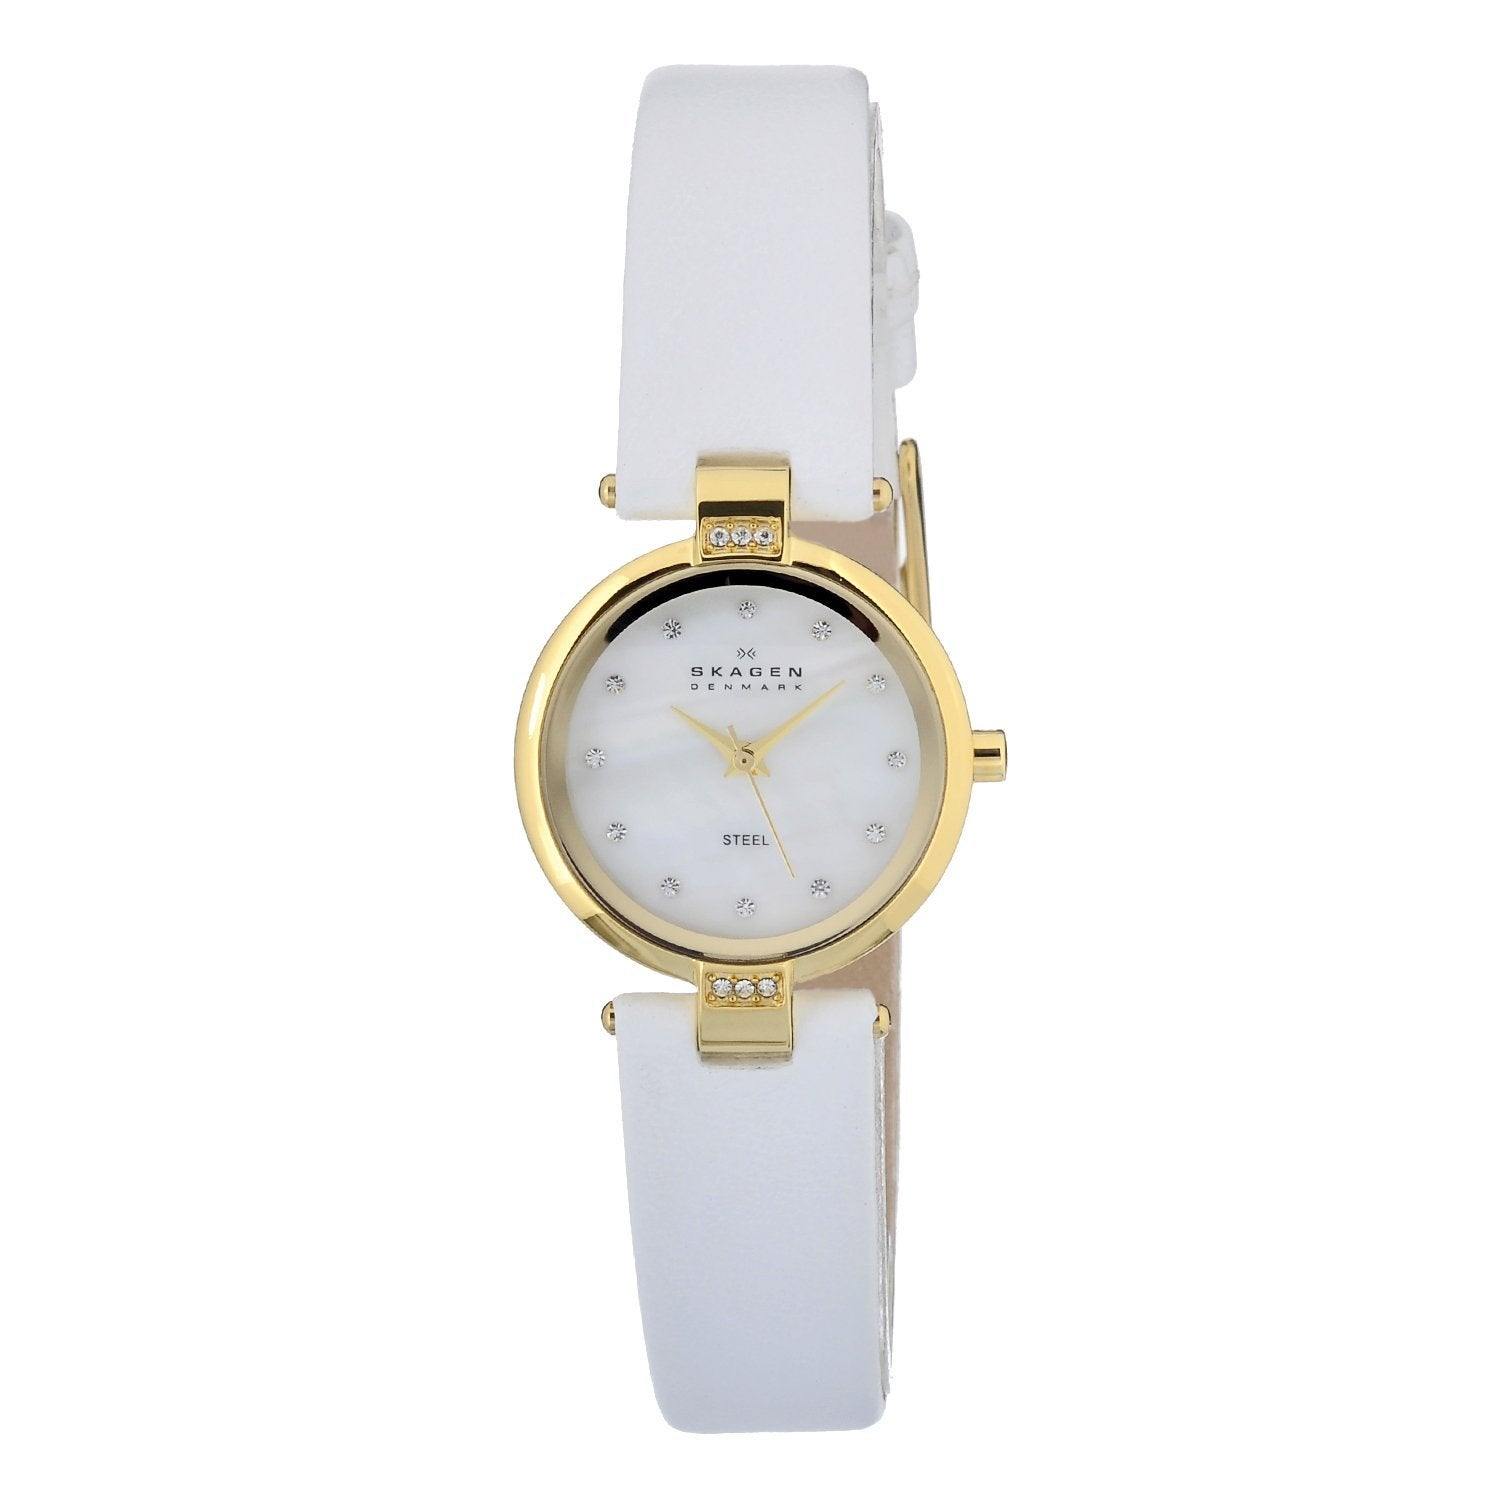 d461fe23d Shop Skagen Women's MOP Dial Element White Leather Strap Watch - Free  Shipping Today - Overstock - 6803588